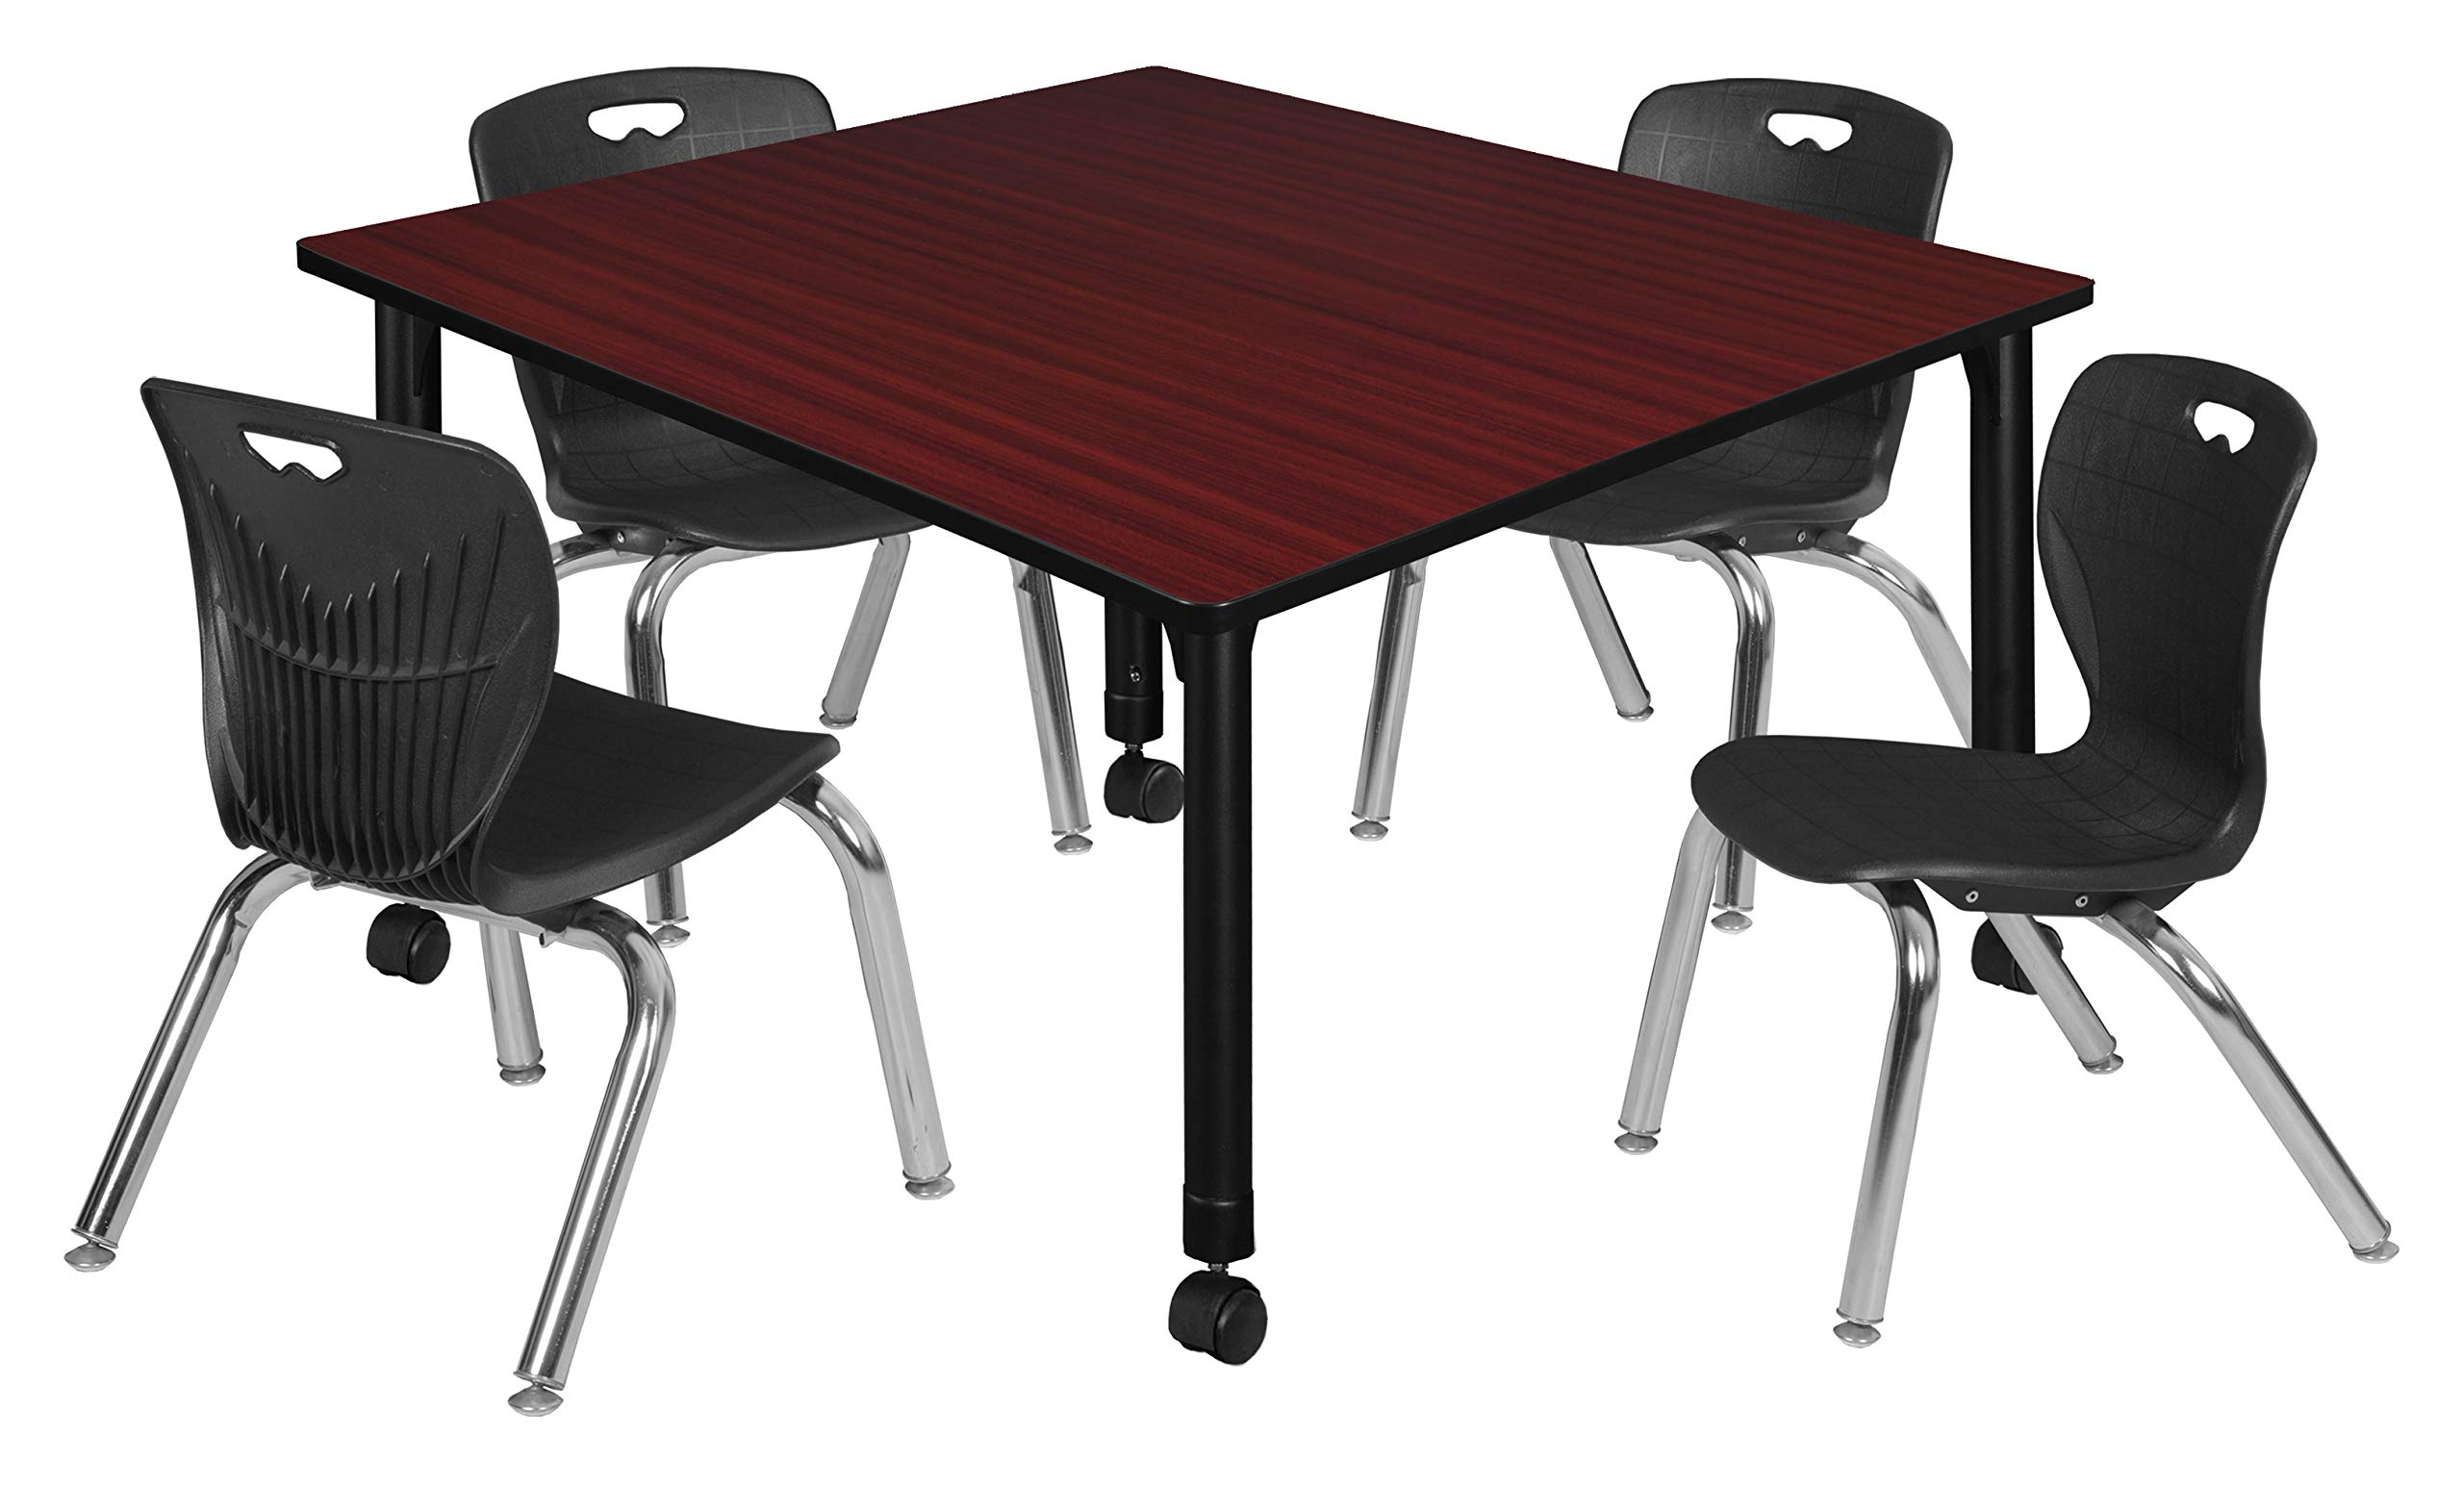 Regency TB4848MHAPCBK45BK Kee Height Adjustable Mobile Classroom Table Set with Four 12'' Andy Chairs 48'' Mahogany/Black